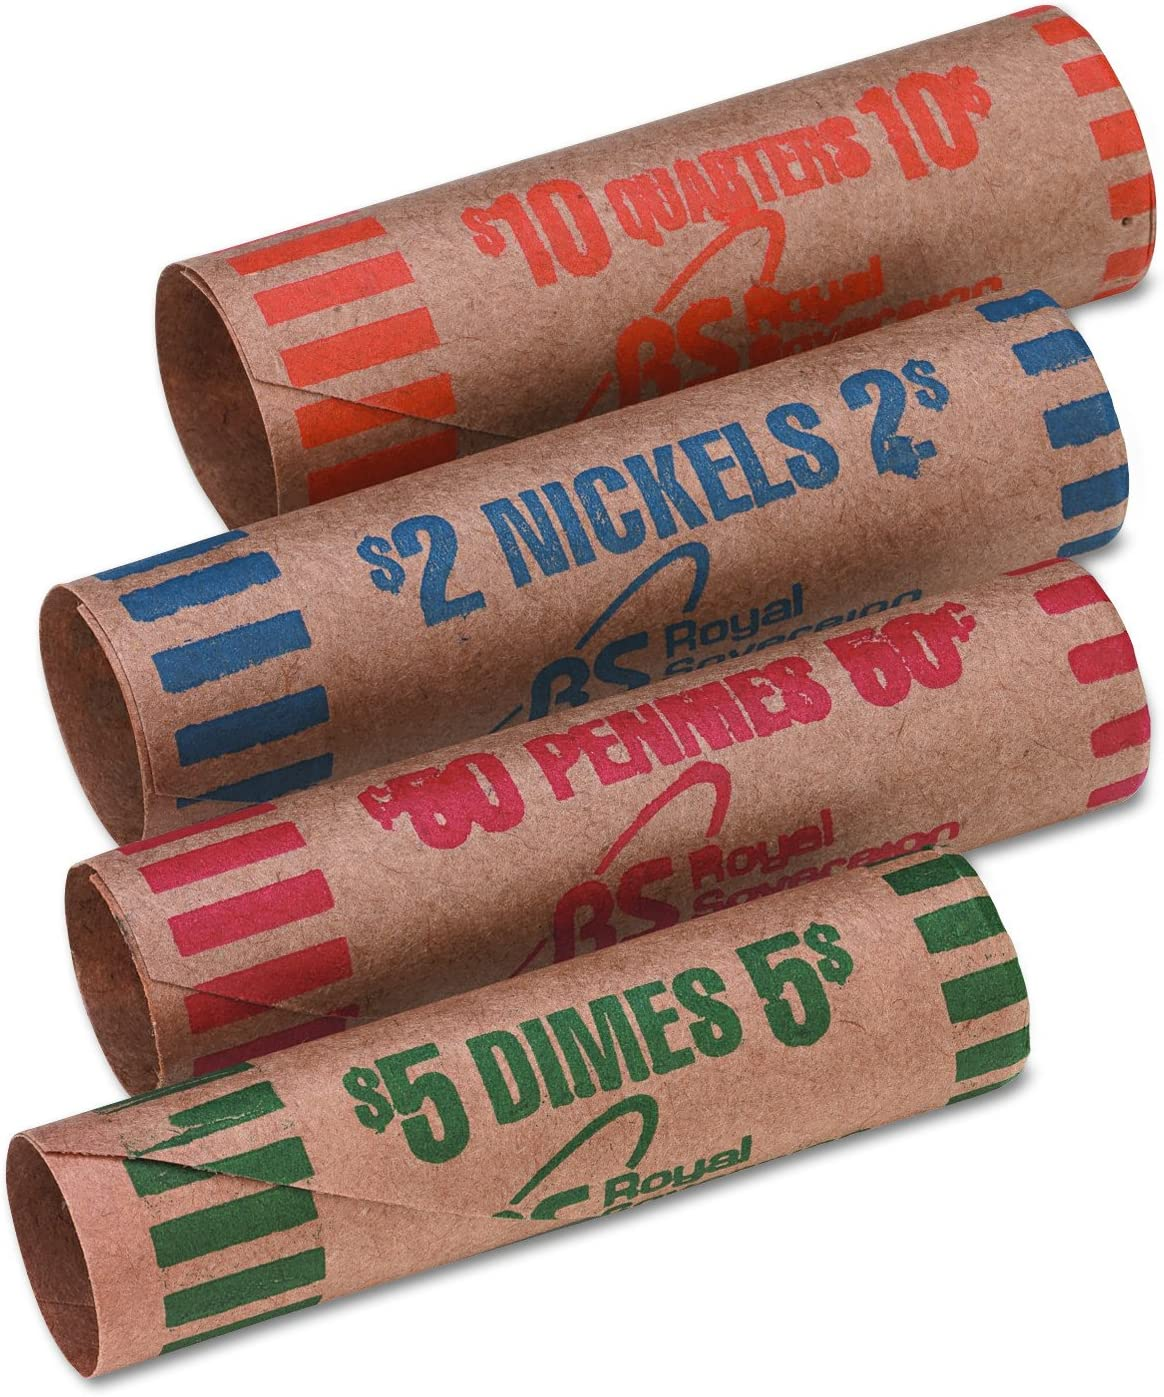 25 NICKELS Paper Coin Wrappers NICKEL $2 Coin Holders Sleeves Roll